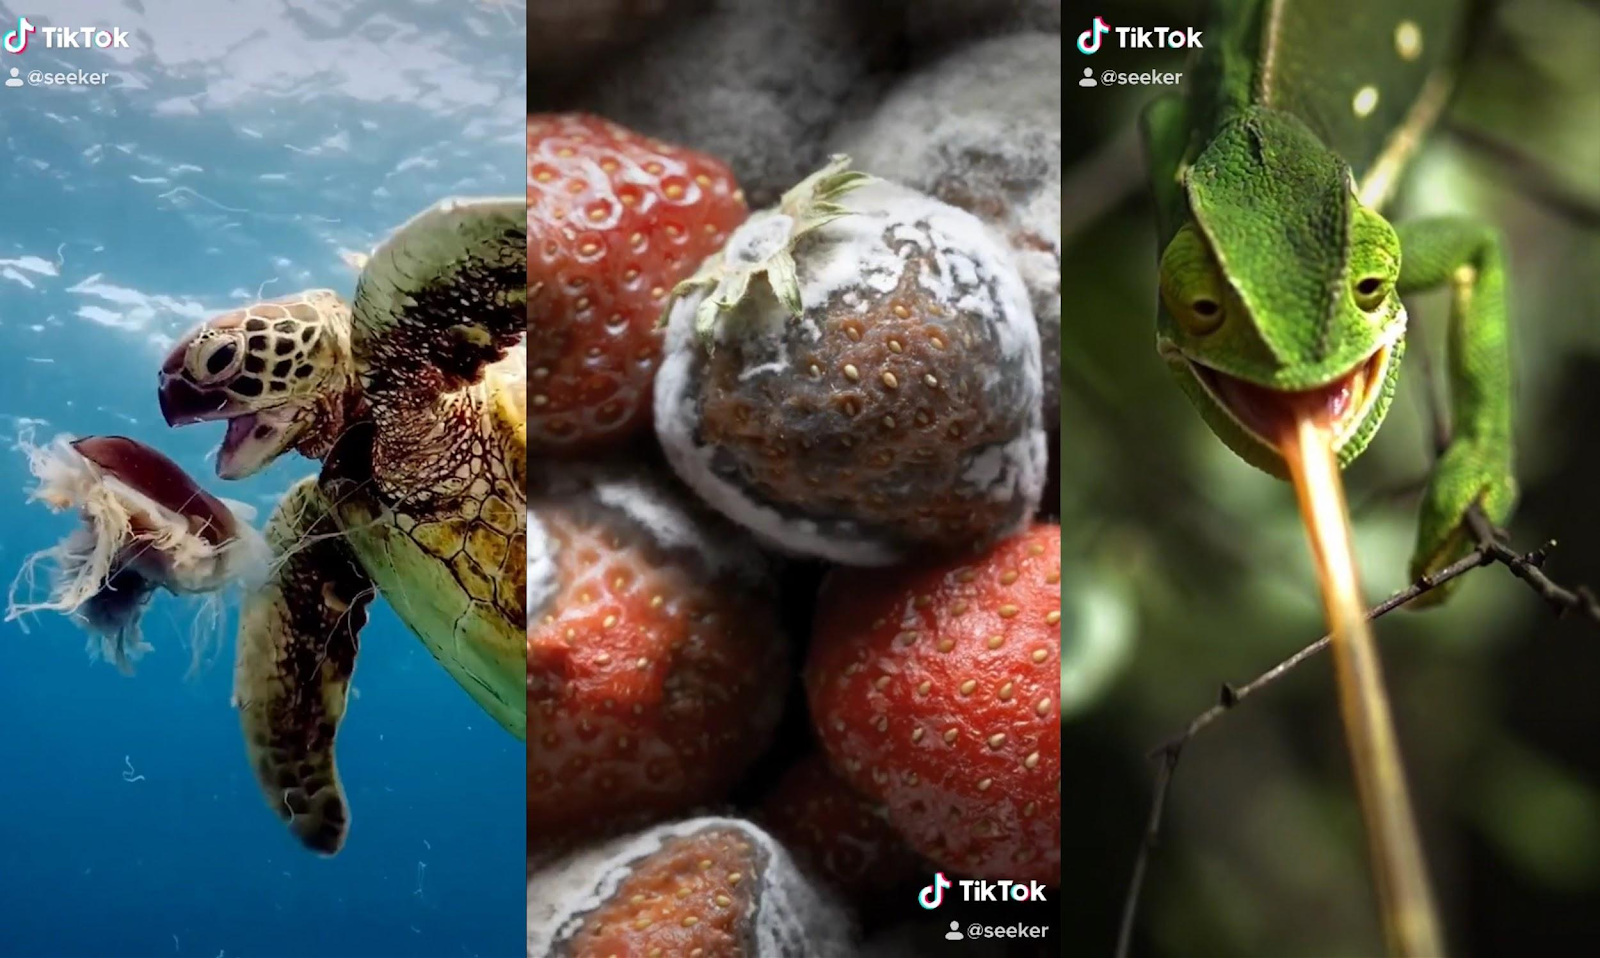 a screen grab from seeker featuring images of a turtle, lizard and strawberry on tiktok